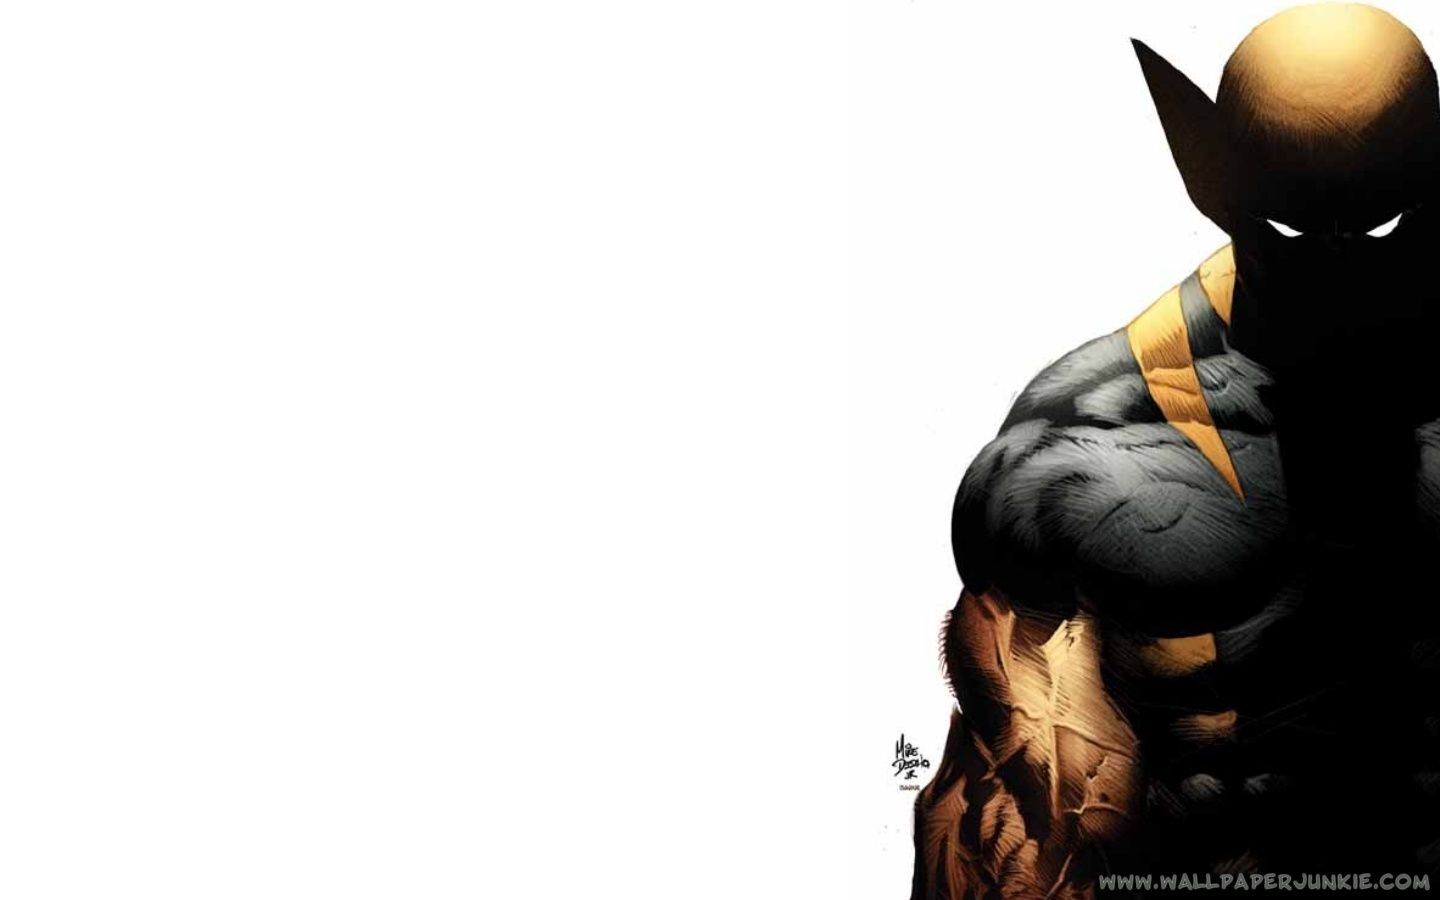 Fantastic Wallpaper High Quality Superhero - ef4278708a4827a4222d32403dbcde5c  Collection_337819.jpg